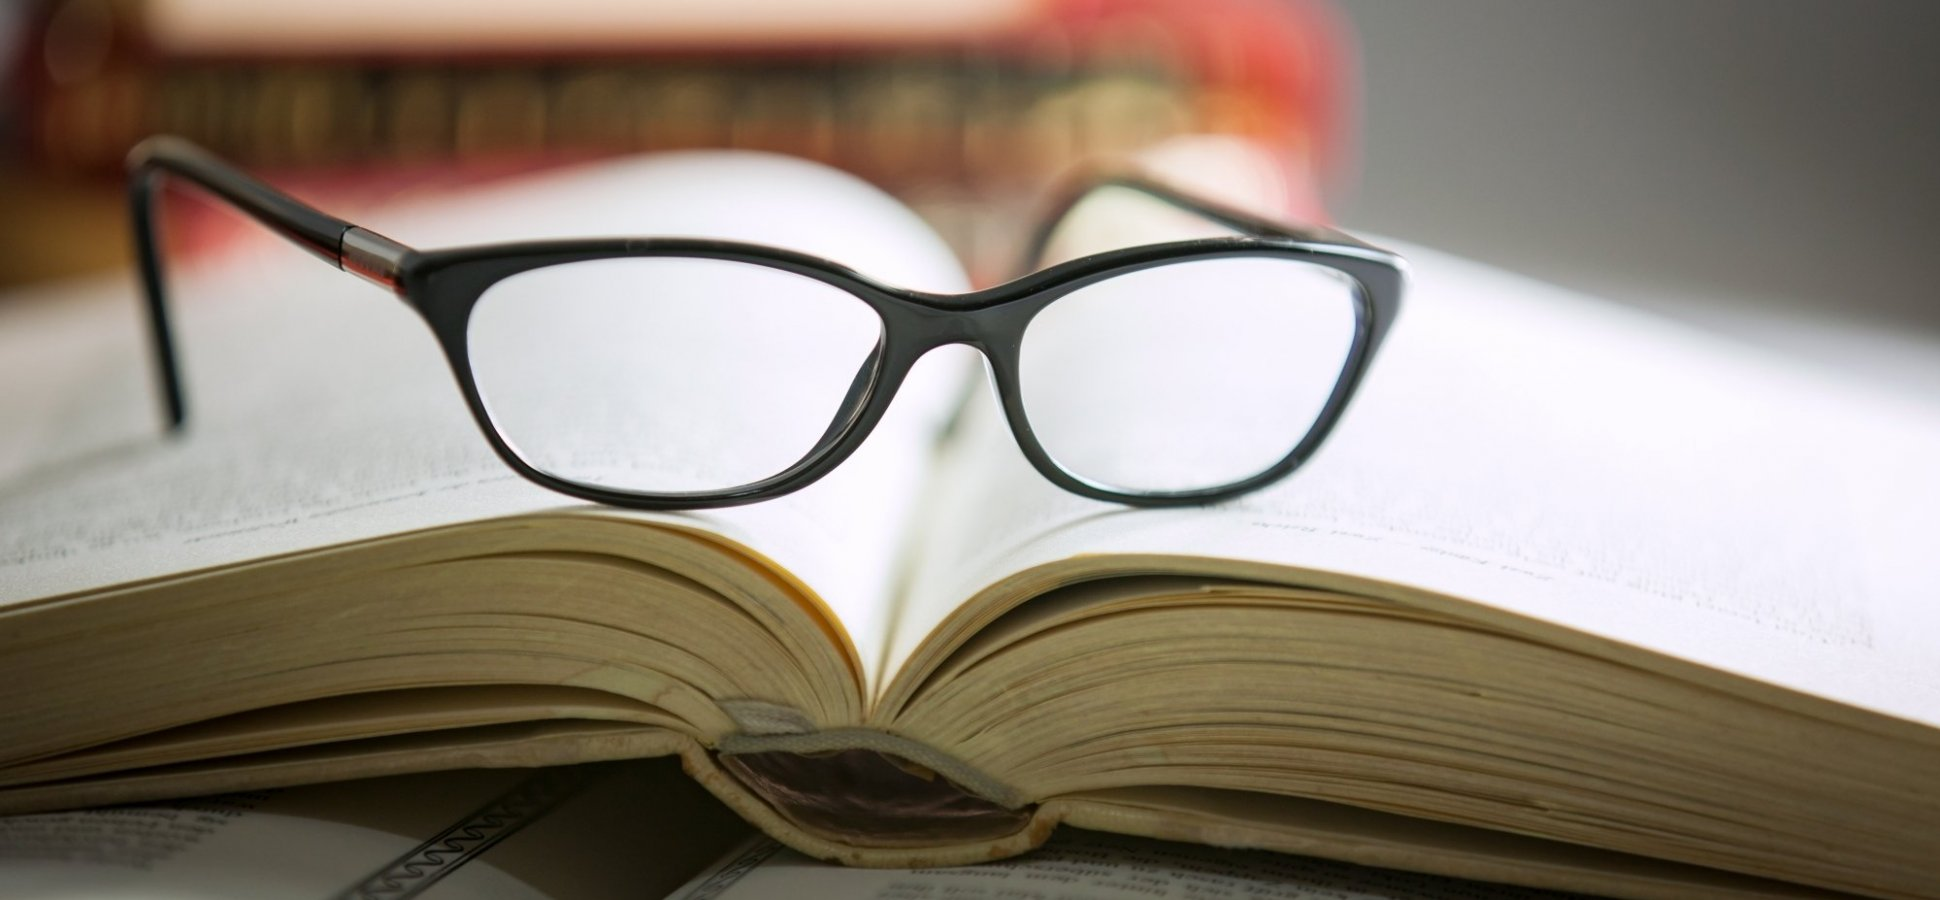 32 Books Anyone Who Wants to Succeed Should Read